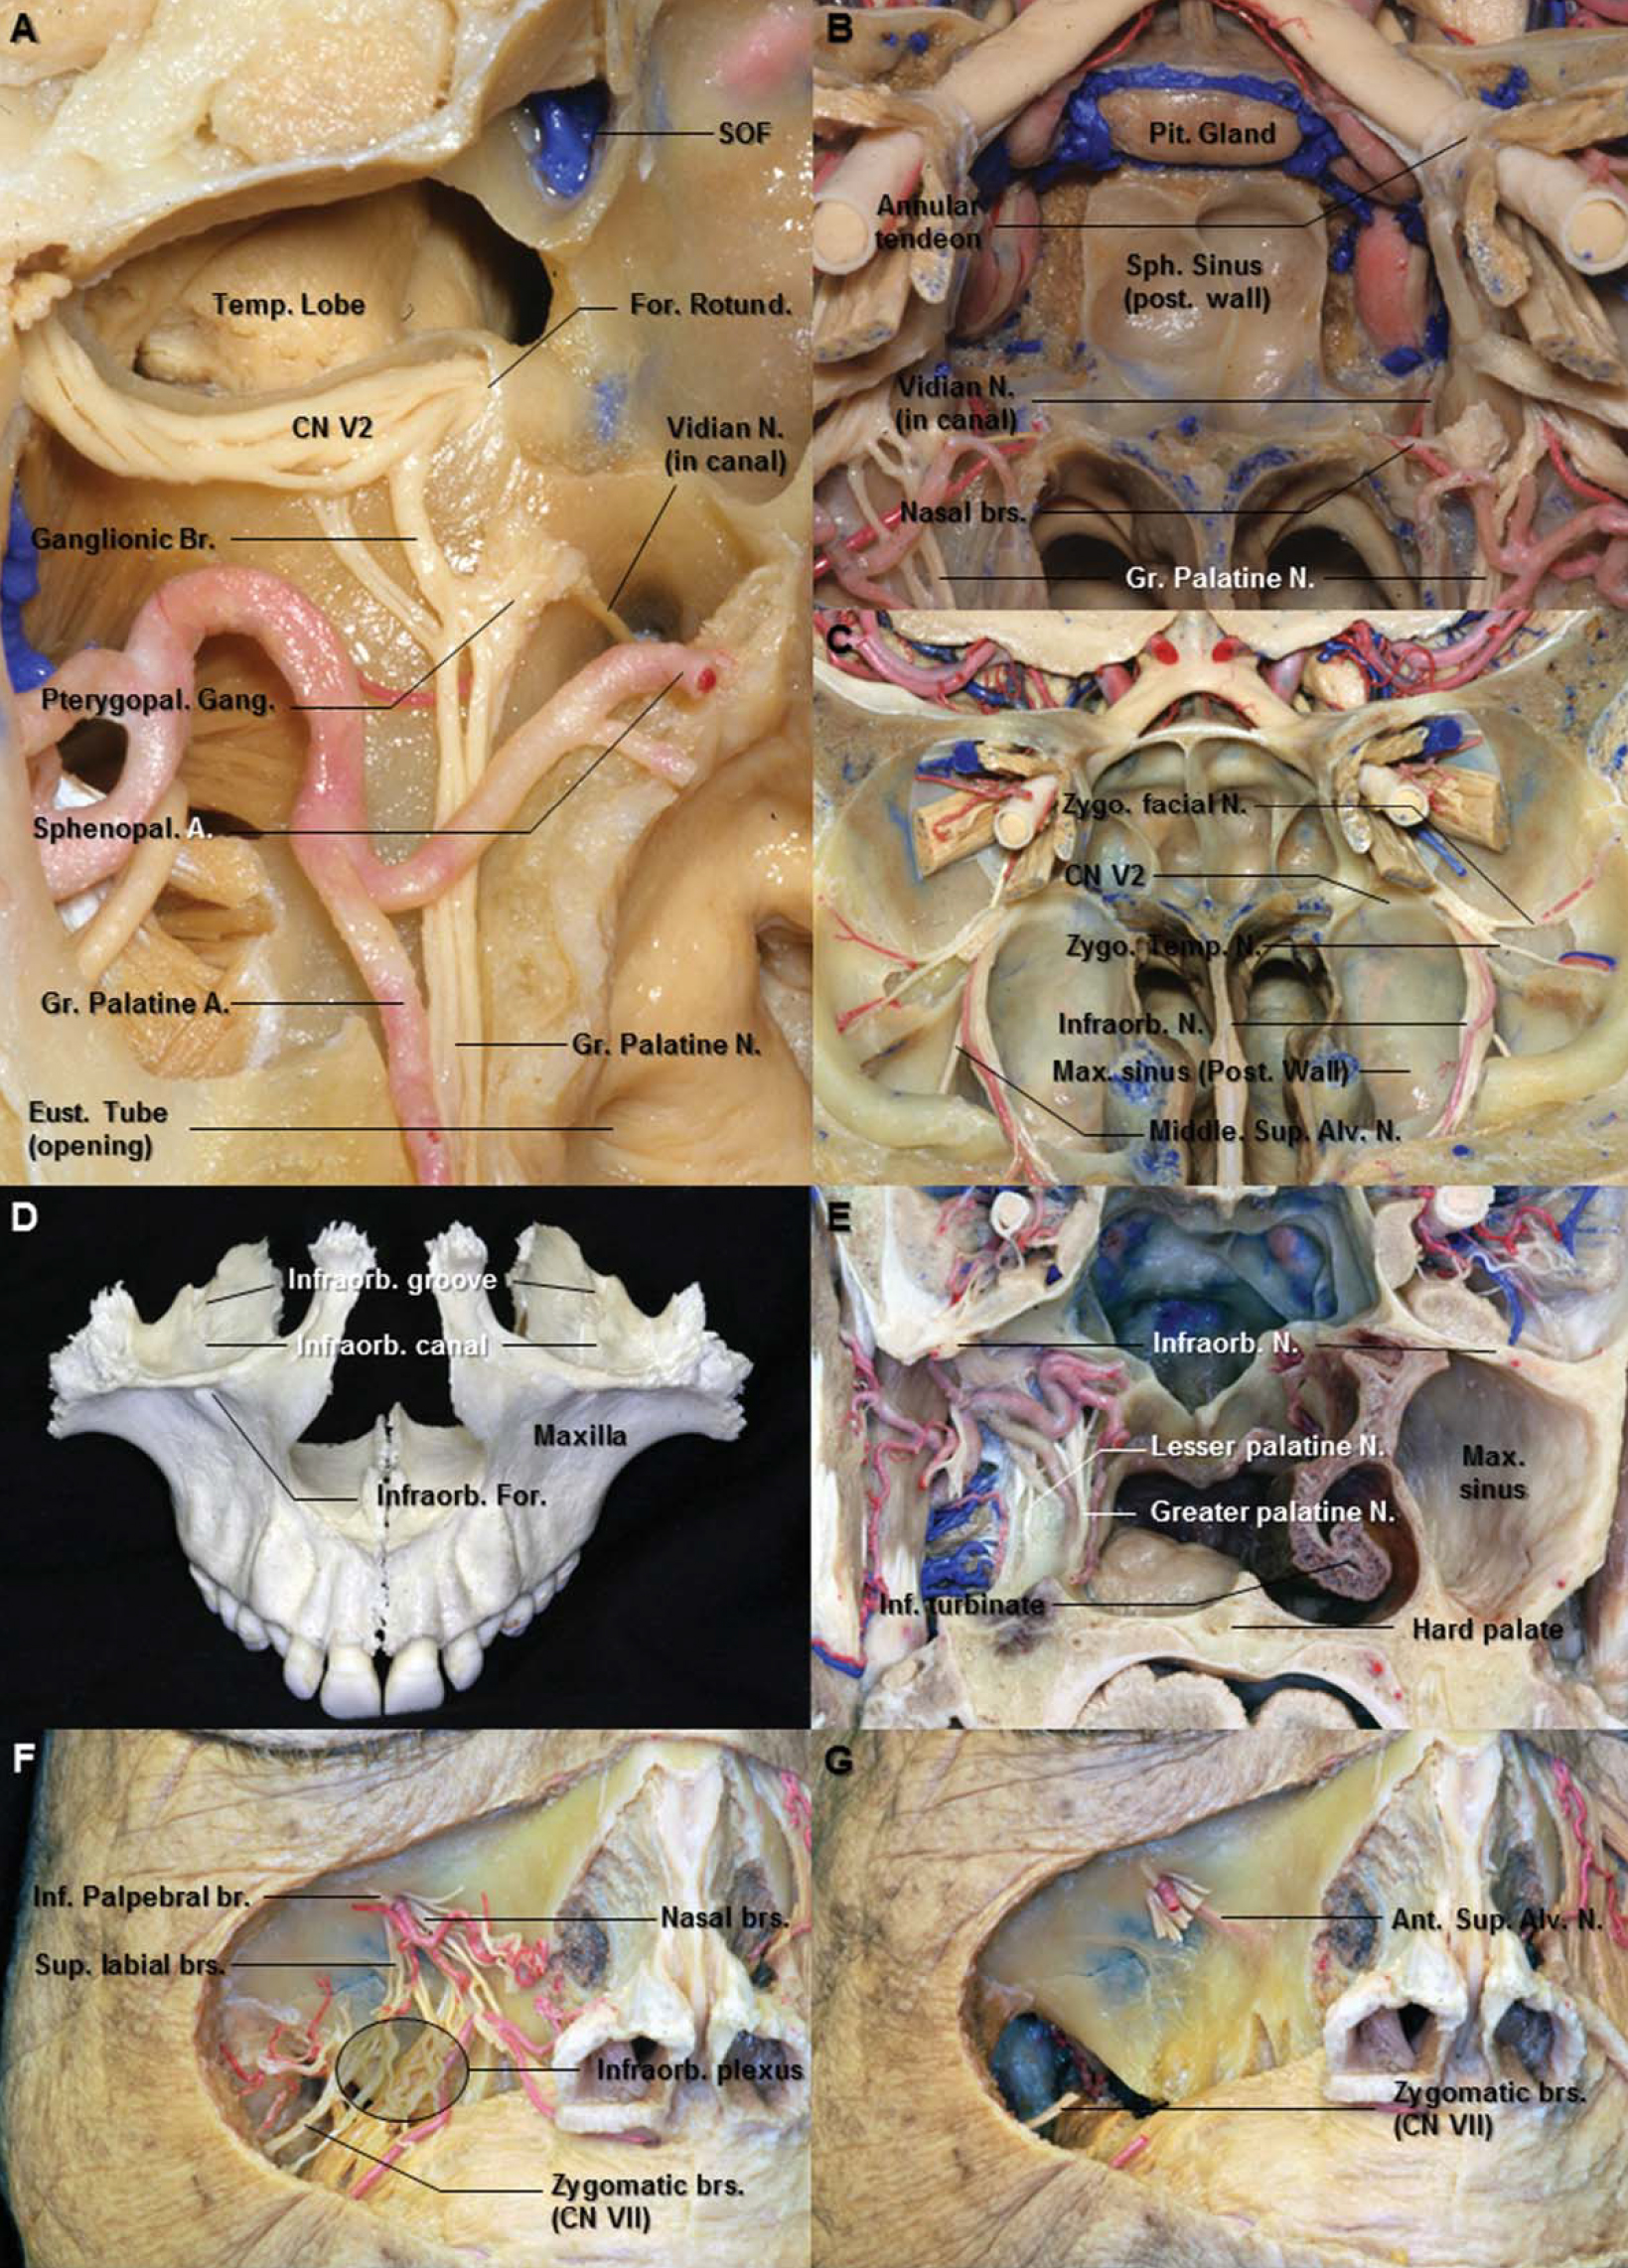 Figure 9. A. Enlarged anterior oblique view of the pterygopalatine fossa. The pterygopalatine ganglion receives communicating rami from the maxillary nerve. The sphenopalatine branch passes through the sphenopalatine foramen to enter the lateral nasal cavity. B. The terminal branch of the maxillary artery and nasal branches arising from the pterygopalatine ganglion penetrate the lateral wall of the nasal cavity to course along the sphenoid face. C. Anterosuperior view of the orbit. The maxillary nerve gives rise to the infraorbital, zygomatic, and superior alveolar nerves. The anterior wall of the pterygopalatine fossa is formed by the posterior wall of the maxillary sinus. D. Anterosuperior view of the maxilla. The maxillary nerve enters the infraorbital groove and canal by passing through the inferior orbital fissure and continues as the infraorbital nerve. The infraorbital nerve emerges in the face through the infraorbital foramen. E. The posterior wall of the right maxillary sinus has been removed to expose the pterygopalatine fossa. The maxillary artery is located anterior to the pterygopalatine ganglion. The palatine nerves descend through the palatine foramina of the maxilla located at the inferior tip of the pterygopalatine fossa. F. The right buccolabial muscles have been removed to expose the branches of the infraorbital nerve. The branches of the infraorbital nerve communicate with the branches of the facial nerve to form infraorbital plexus in the infraorbital space. G. The branches of the infraorbital nerve have been removed. The infraorbital nerve gives rise to anterior superior alveolar nerve just behind the infraorbital exit through the foramen. Abbreviations: A., artery; Alv., alveolar; Ant., anterior; Br., branch; CN., cranial nerve; For., foramen; Gr., great; Inf., inferior; Infraorb., infraorbital; Max., maxillary; N., nerve; Pit., pituitary; Post., posterior; Pterygopal., pterygopalatine; Rotund., rotundum; SOF., superior orbital fissure; Sph., sphenoid; Sphenopal., sphenopalatine; Sup., superior; Temp., temporal; Zygo., zygomatic. (Images courtesy of AL Rhoton, Jr.)